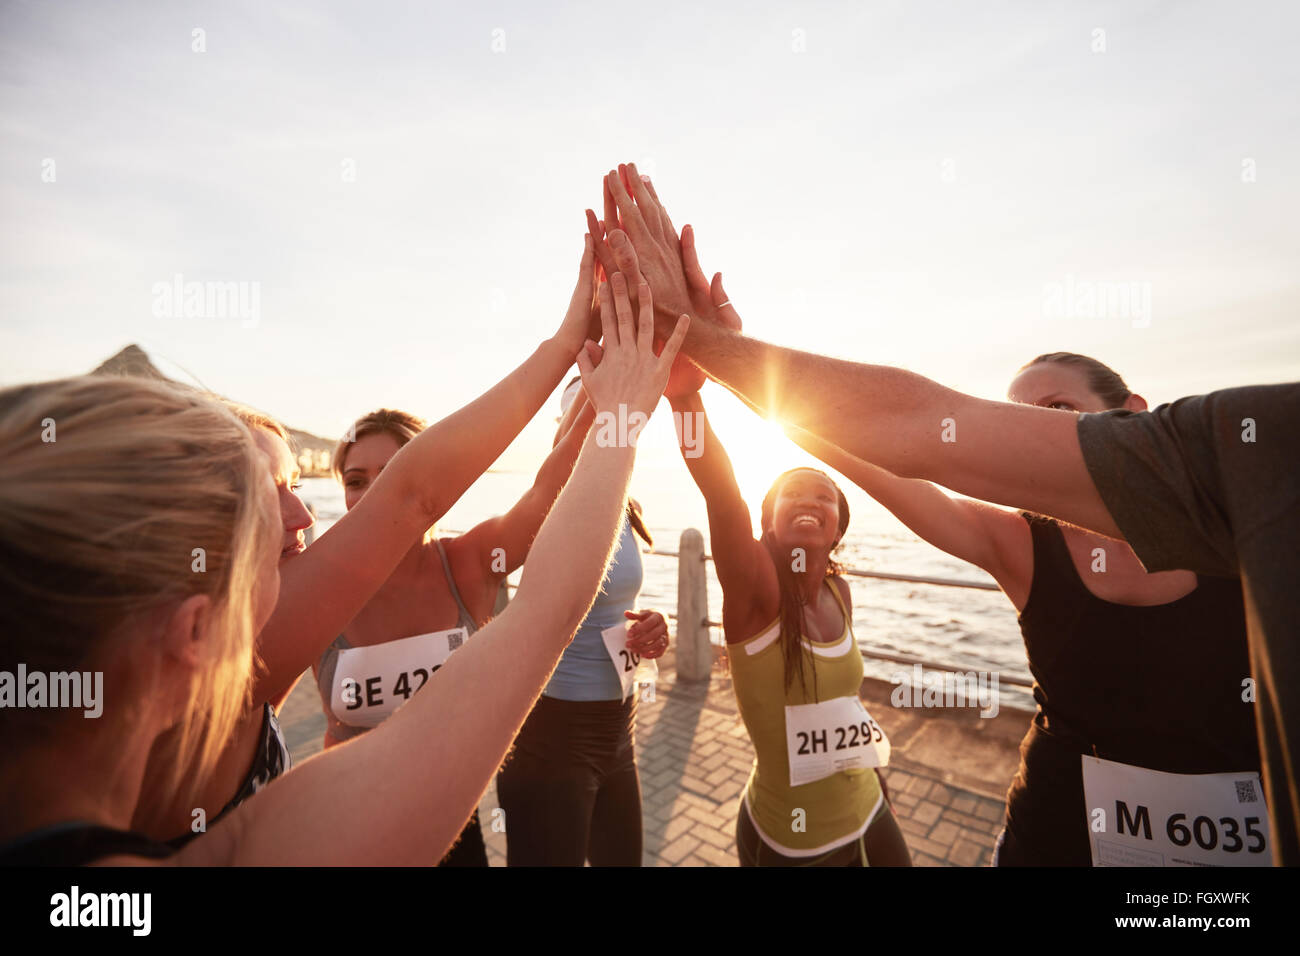 Athletic team with their hands stacked together celebrating success. Marathon runners giving high five. - Stock Image